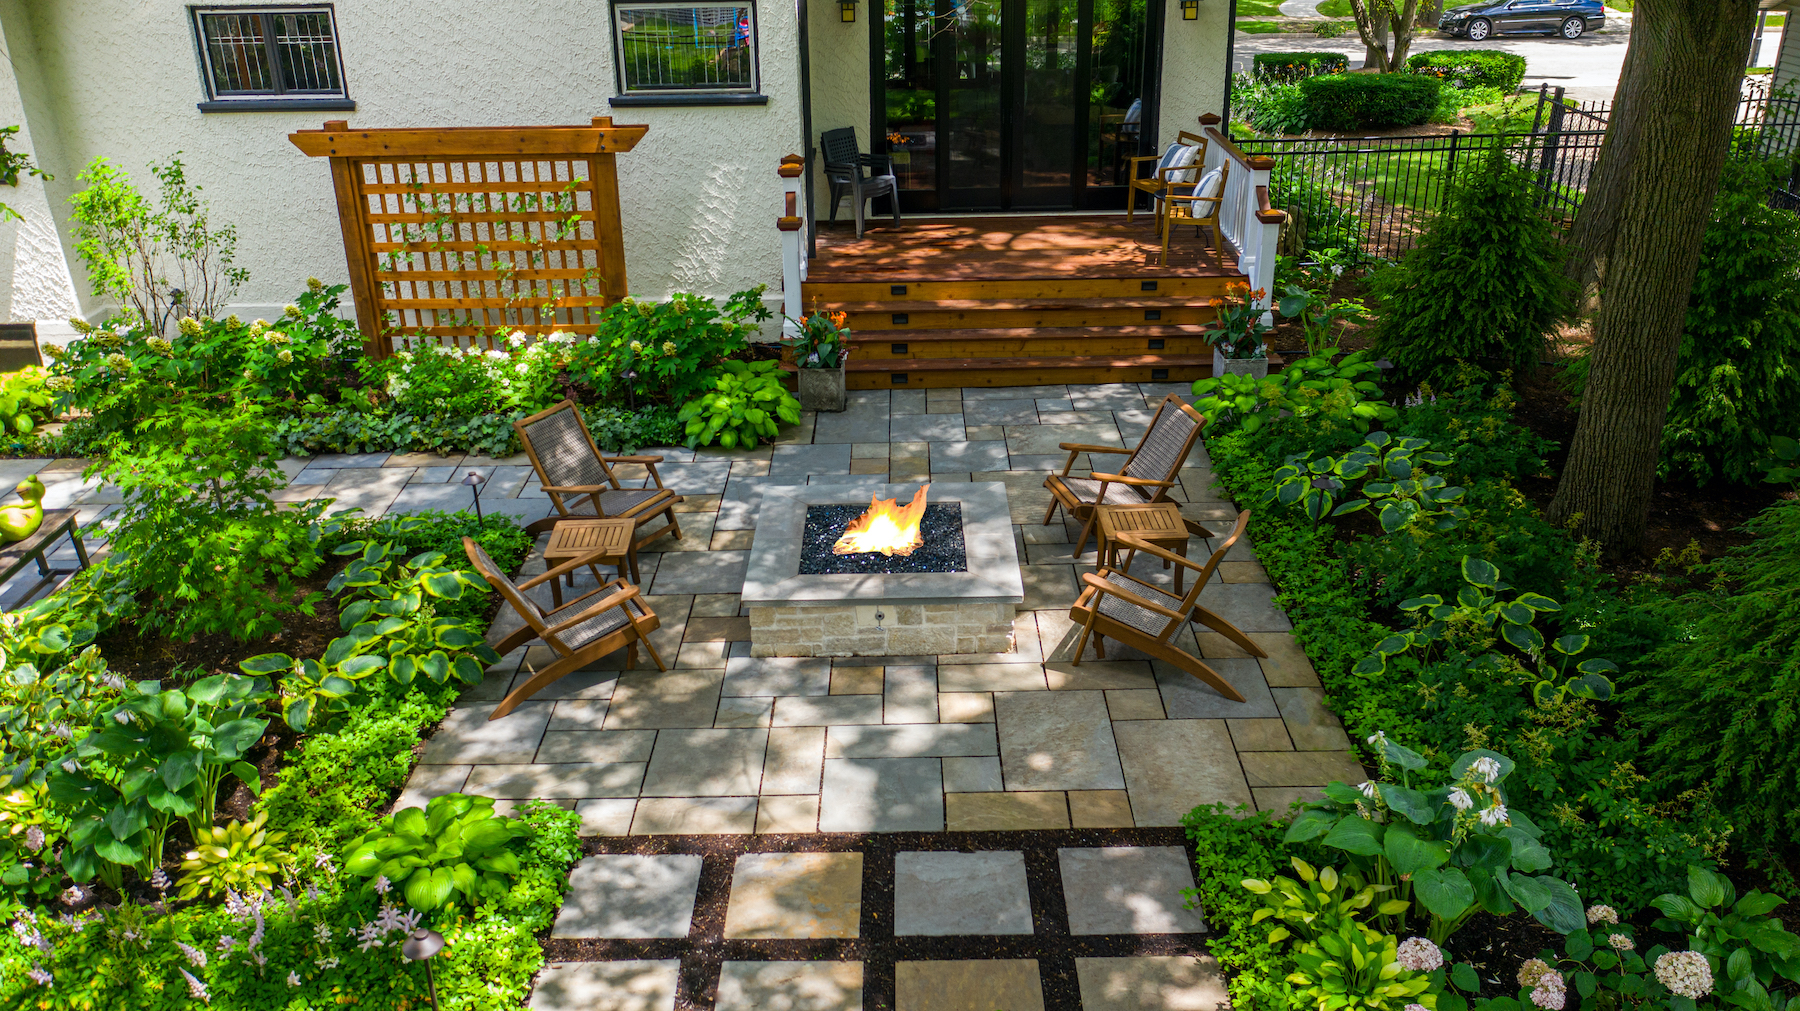 Wood Fire Pit vs. Gas Fire Pit: Which is Best for Your Backyard?